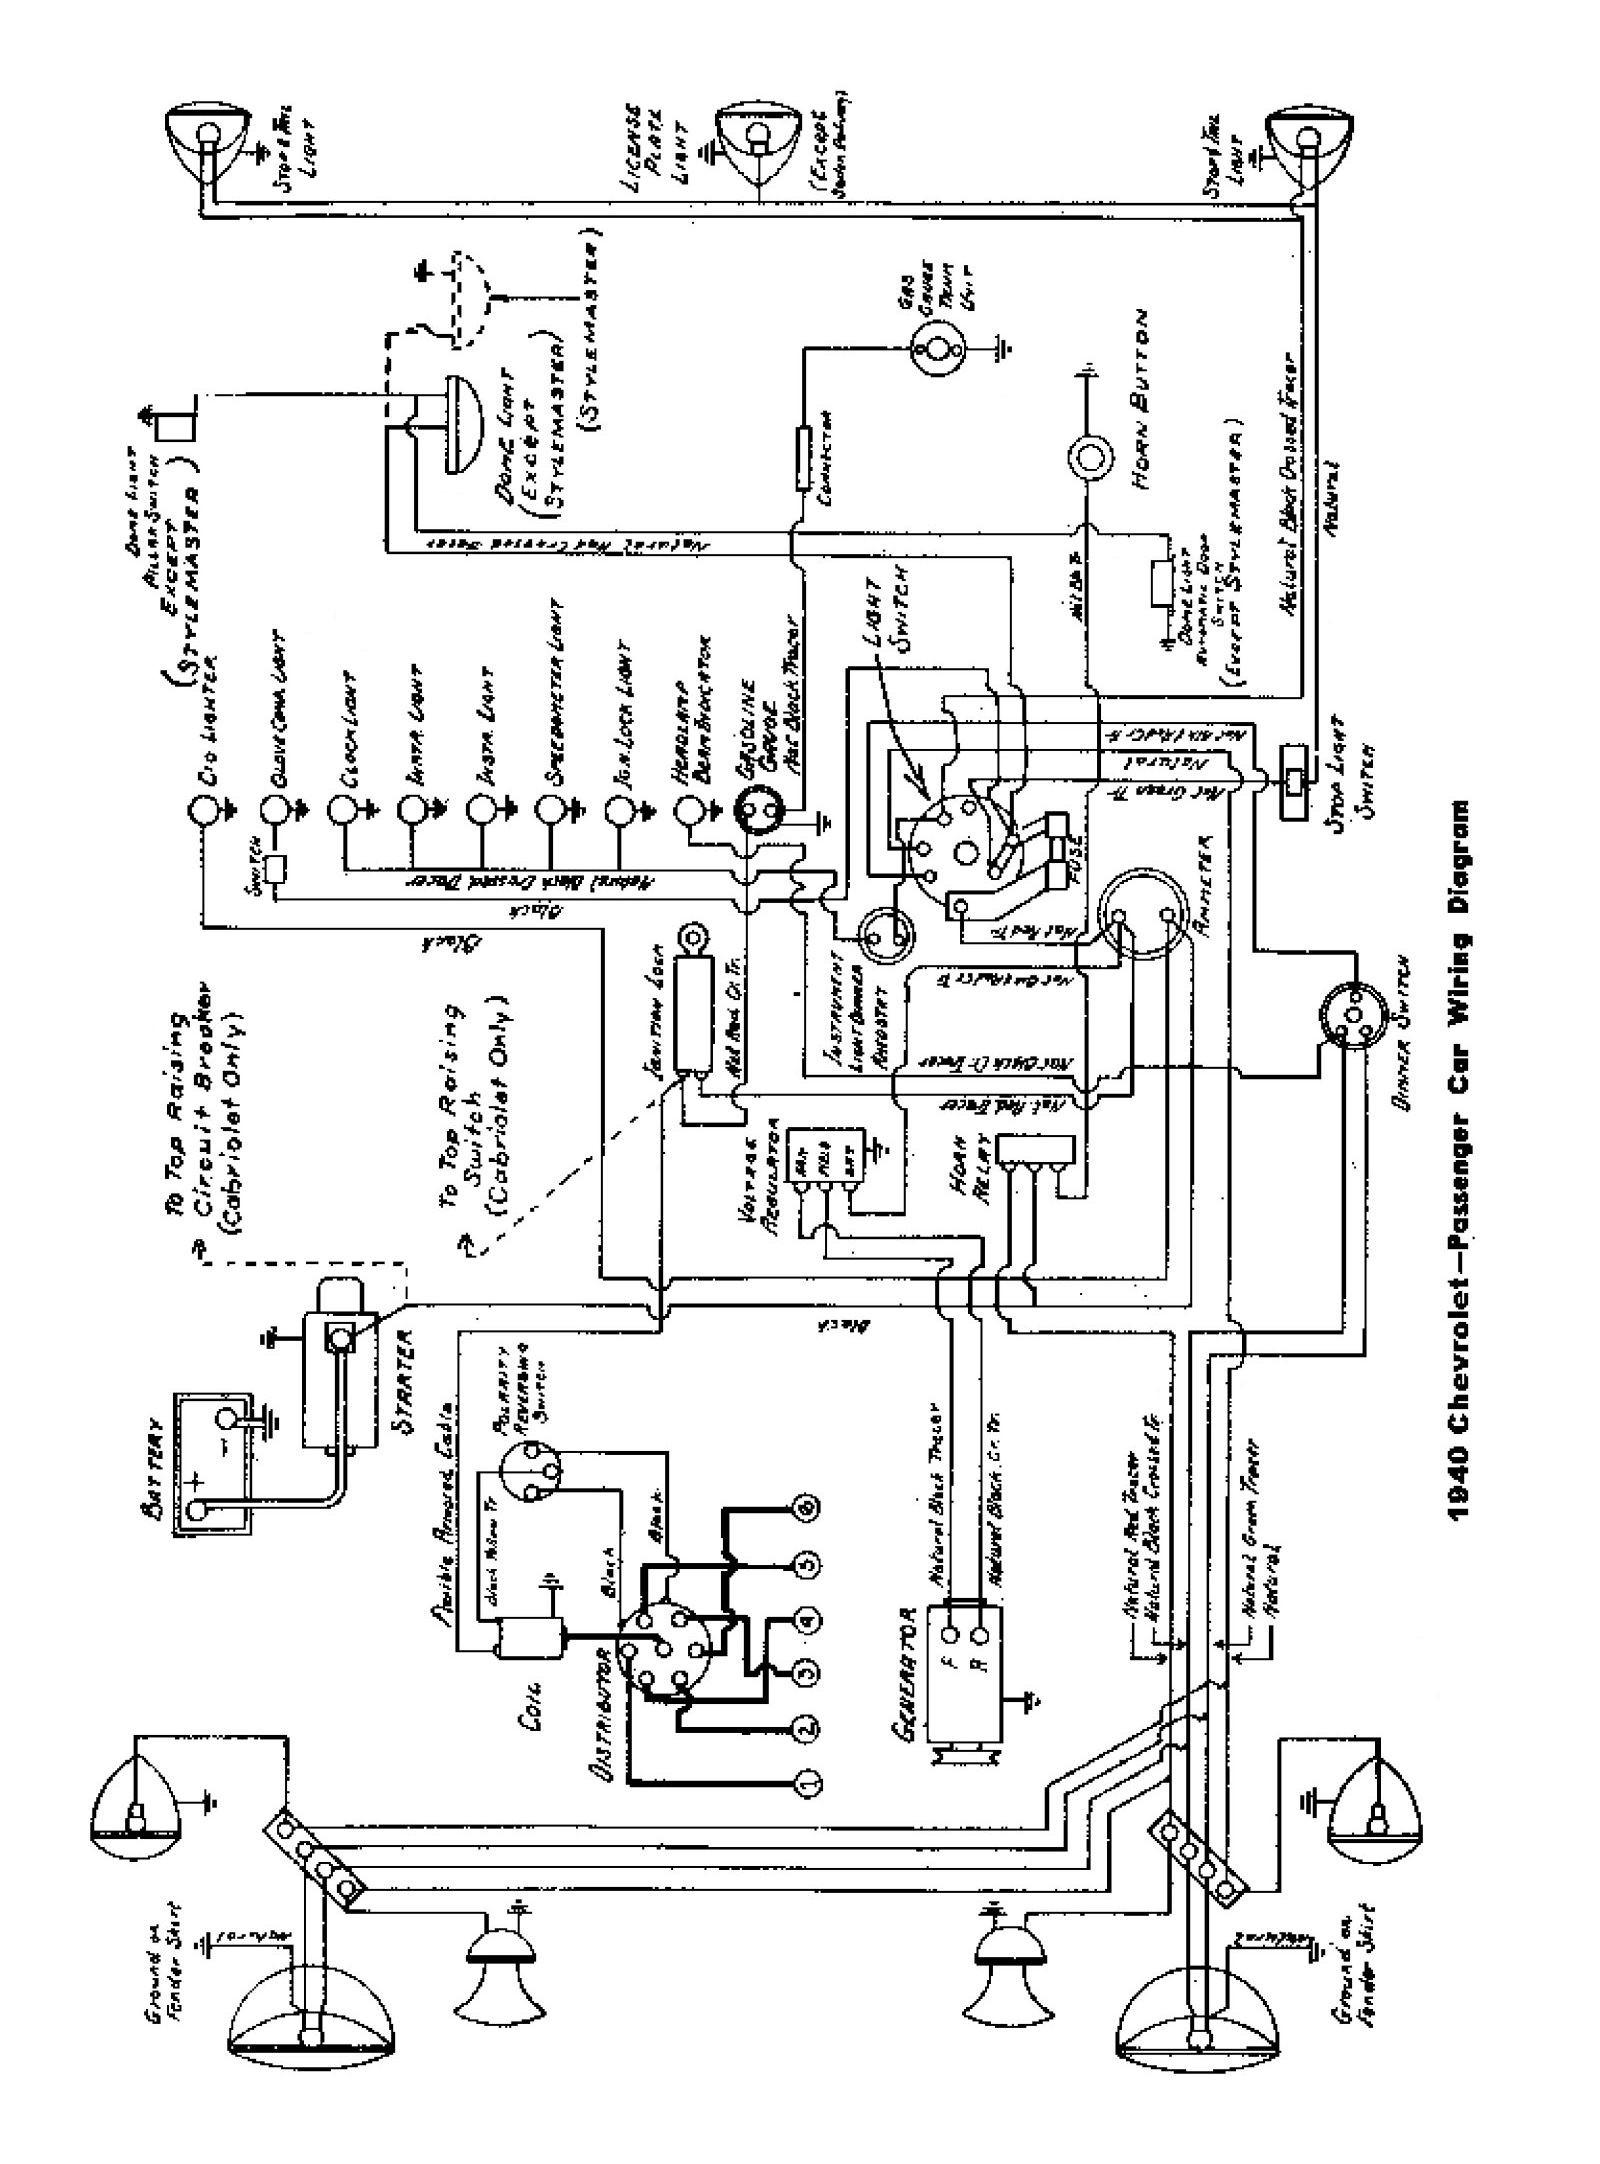 1954 chevy truck wiring diagram